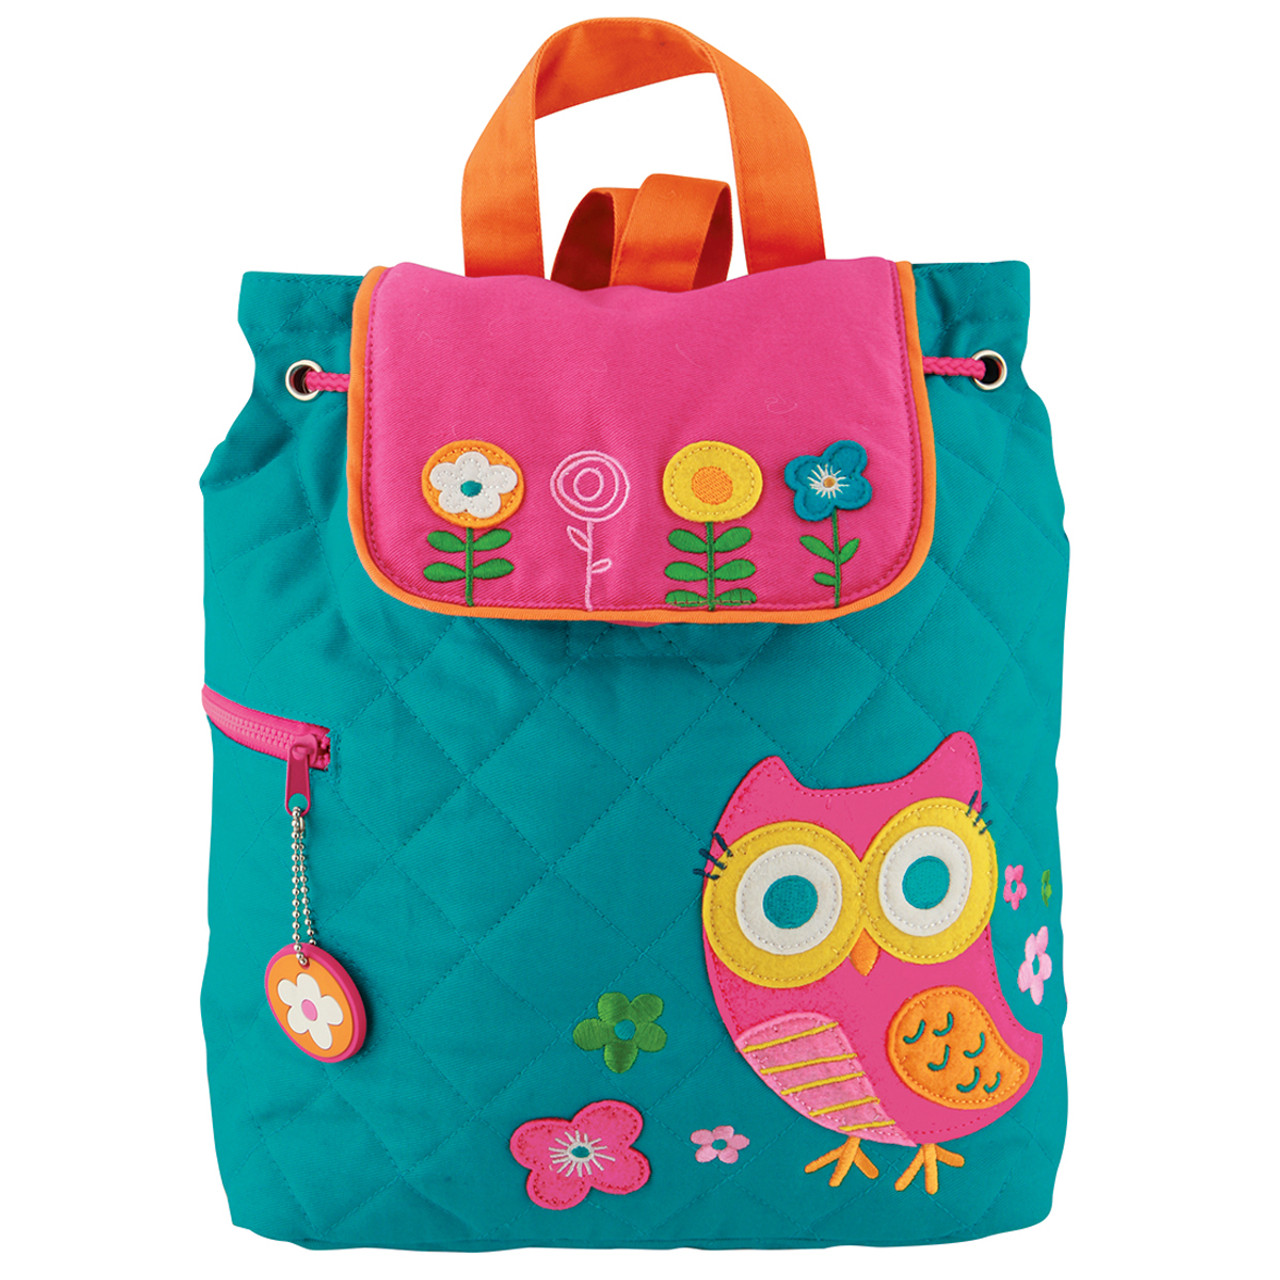 Stephen Joseph Quilted Teal Owl Backpack